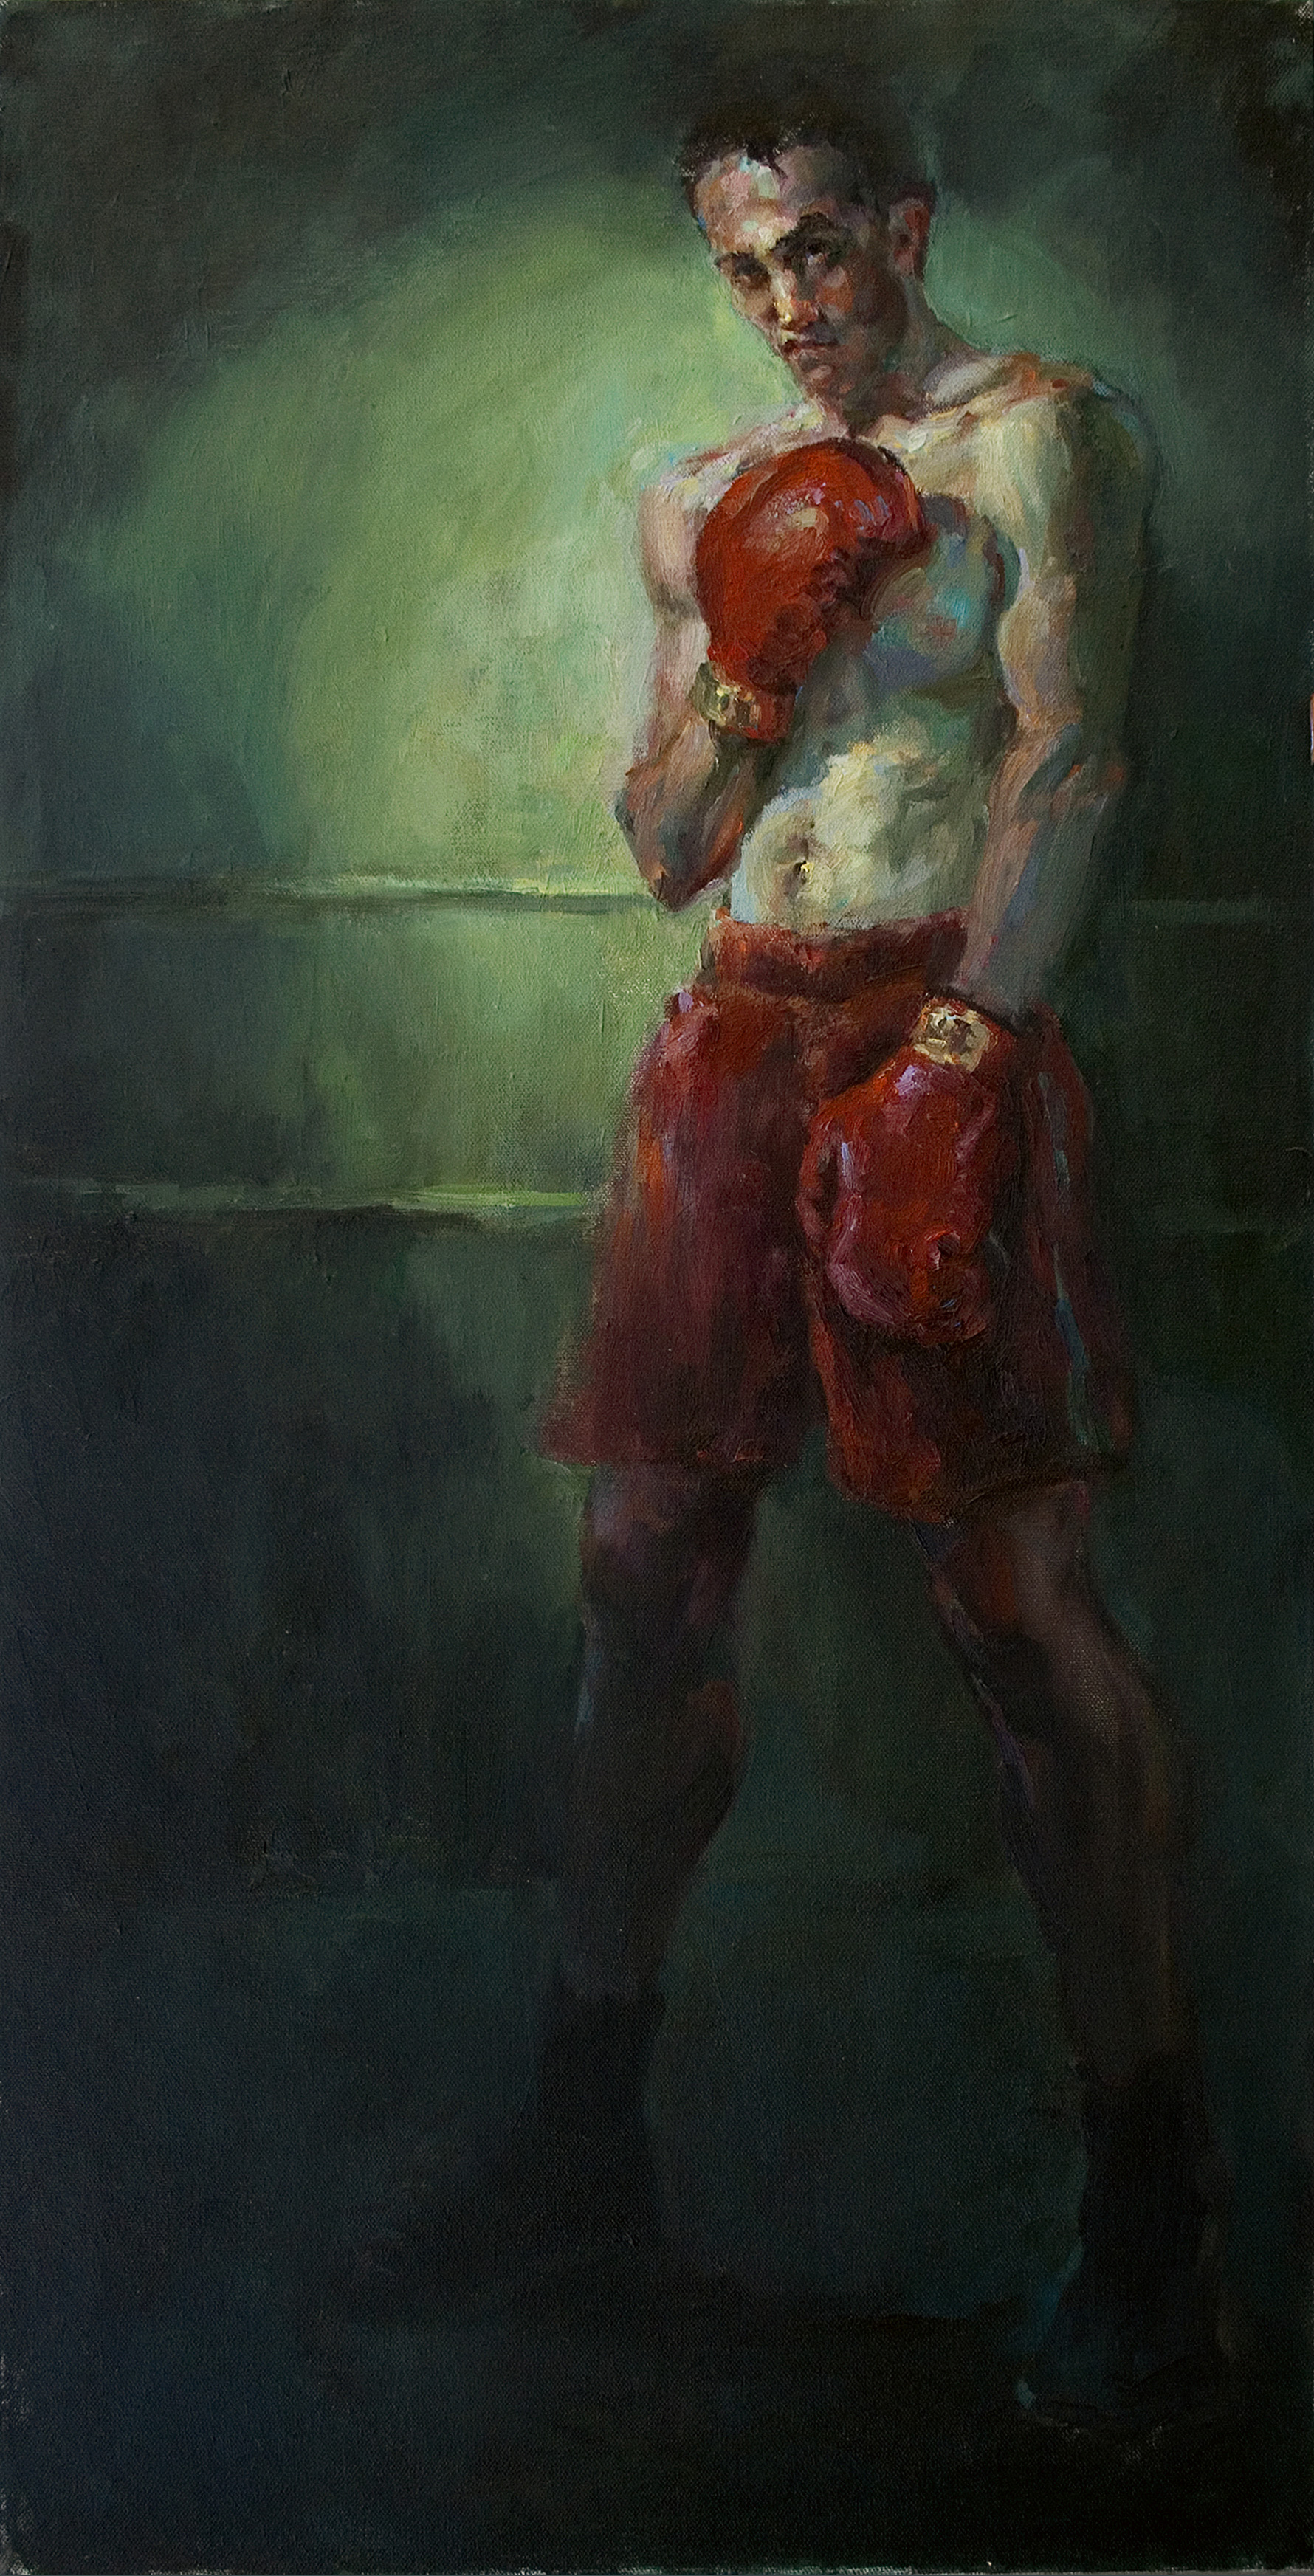 Boxing Painting by Julie Snyder Hangs in National Art Museum of Sport Exhibit